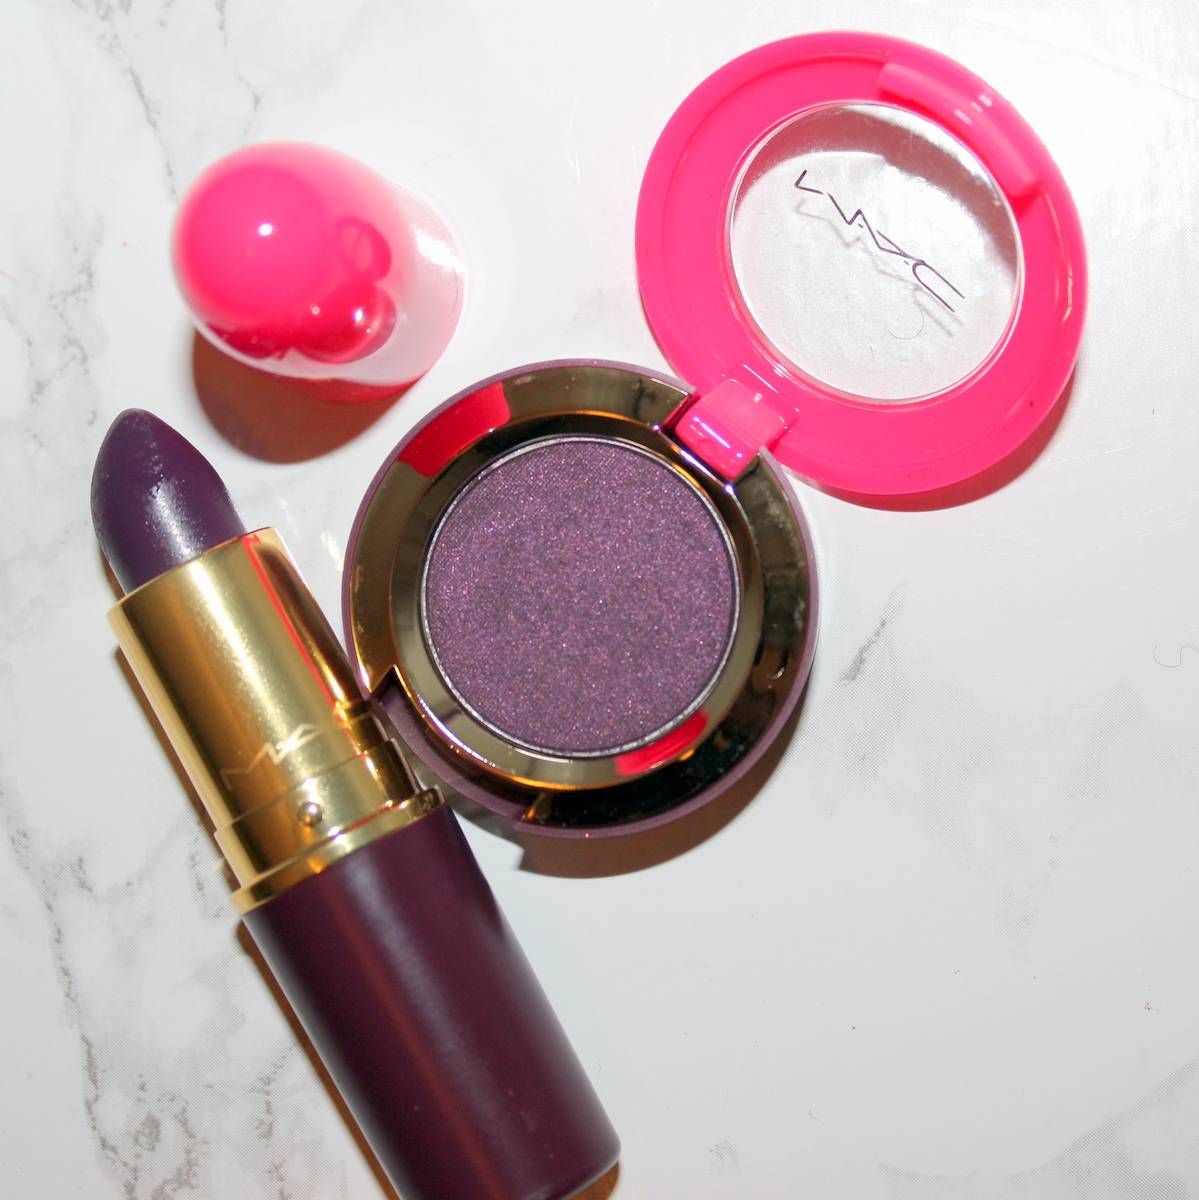 MAC Nutcracker Sweet Dark Lullaby and Leap of Delight